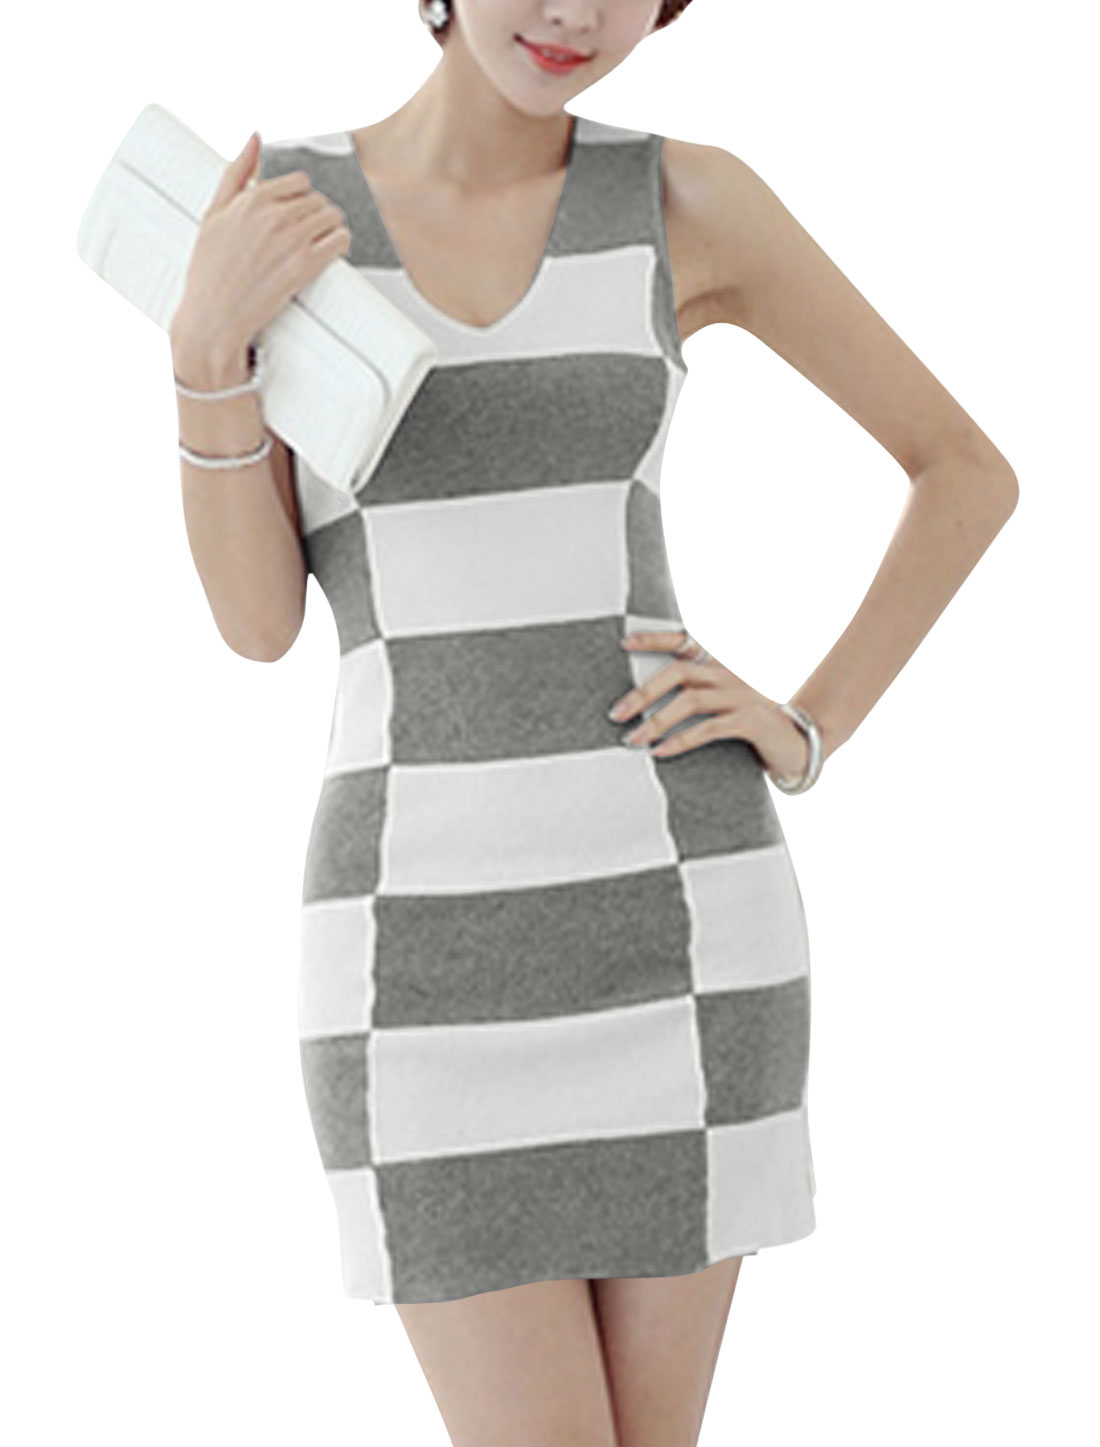 Plaids Pattern Panel Sexy Mini Dress for Lady Light Gray White S